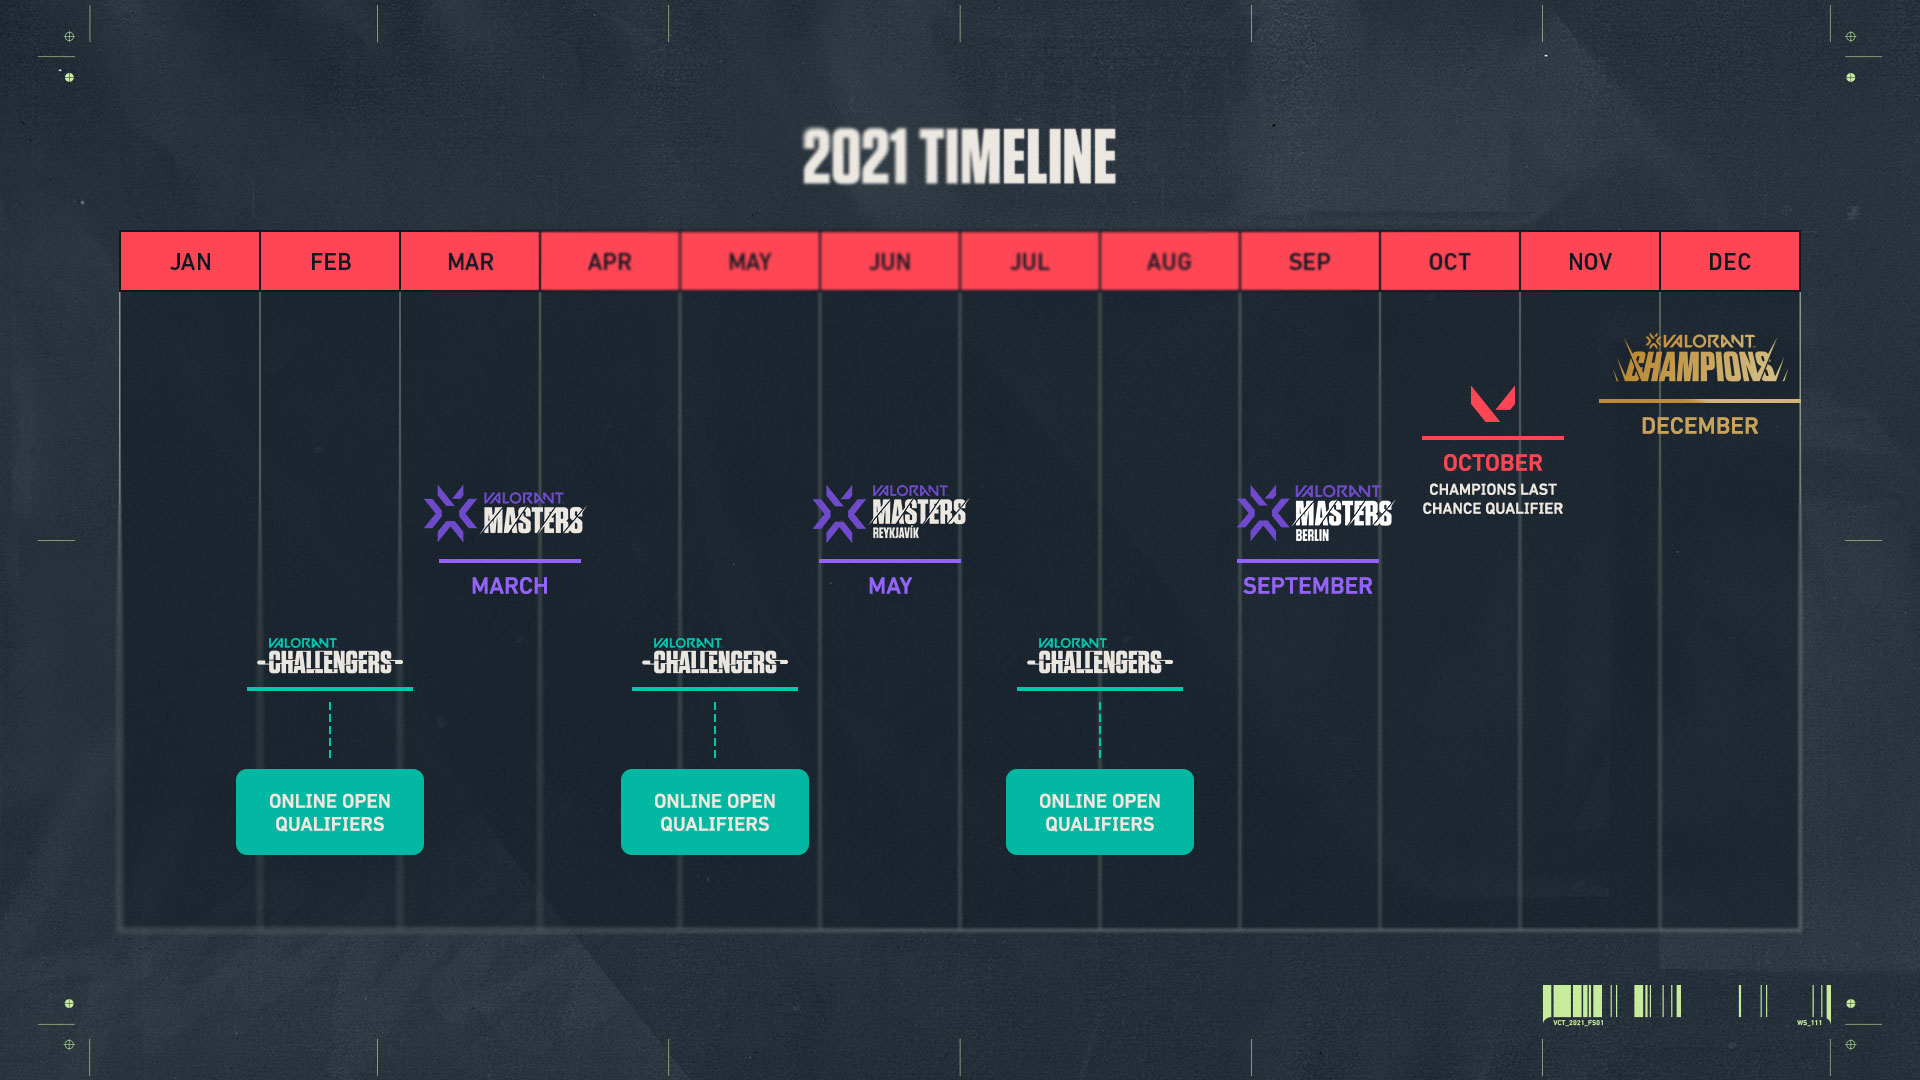 08272021-VCT-Stage-3-TIMELINE_GRAPHIC-inline.jpg